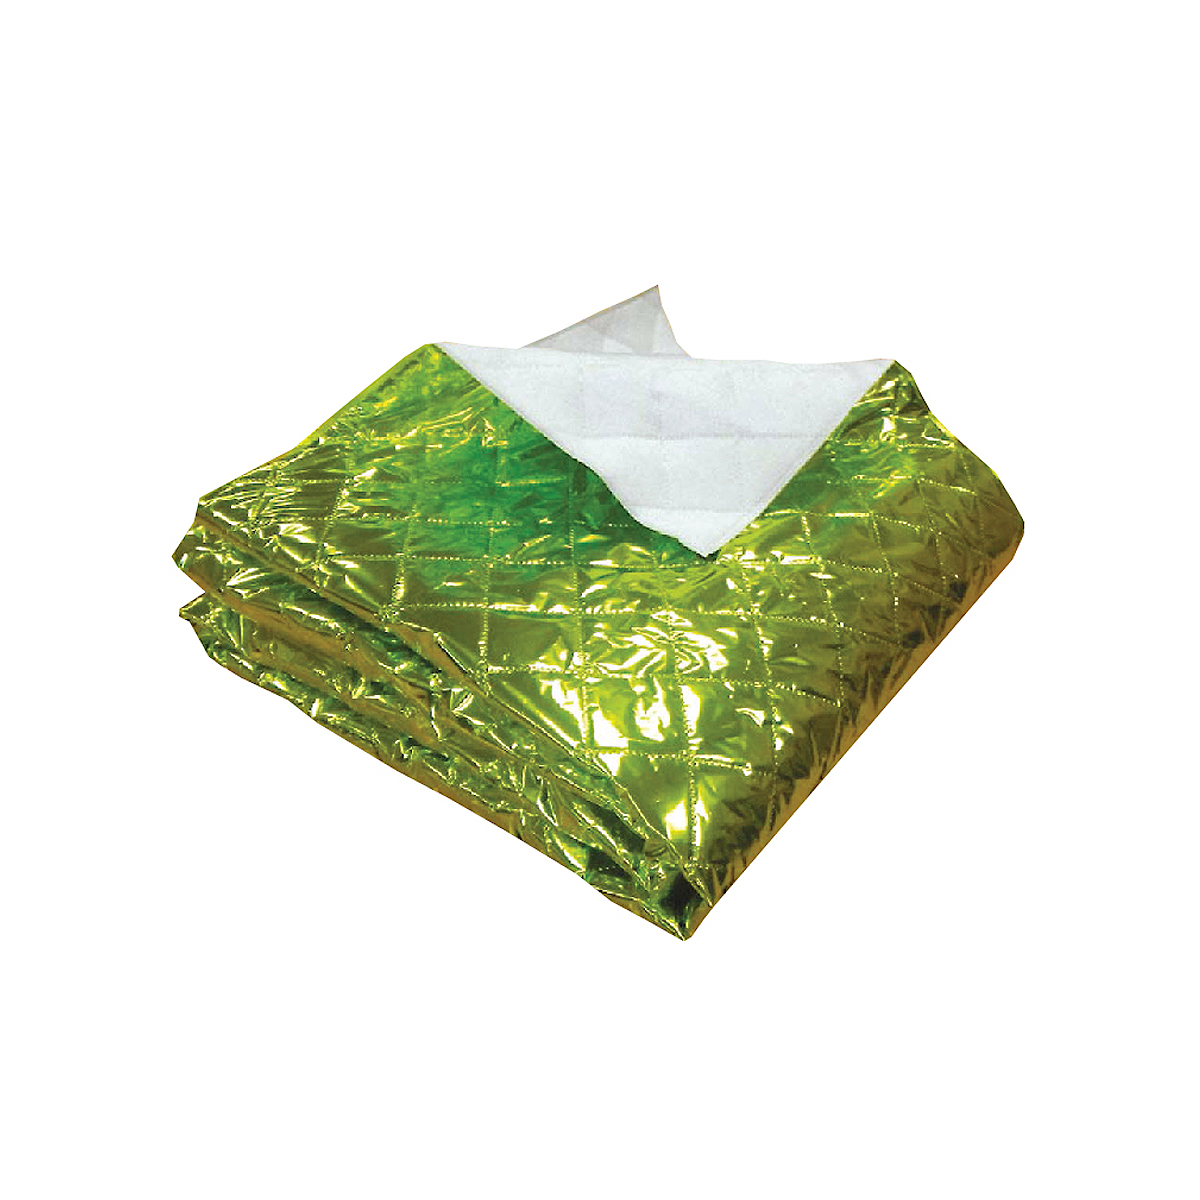 Pack of 30 Green 1.5m x 2m Orvecare Thermal Warming Blanket